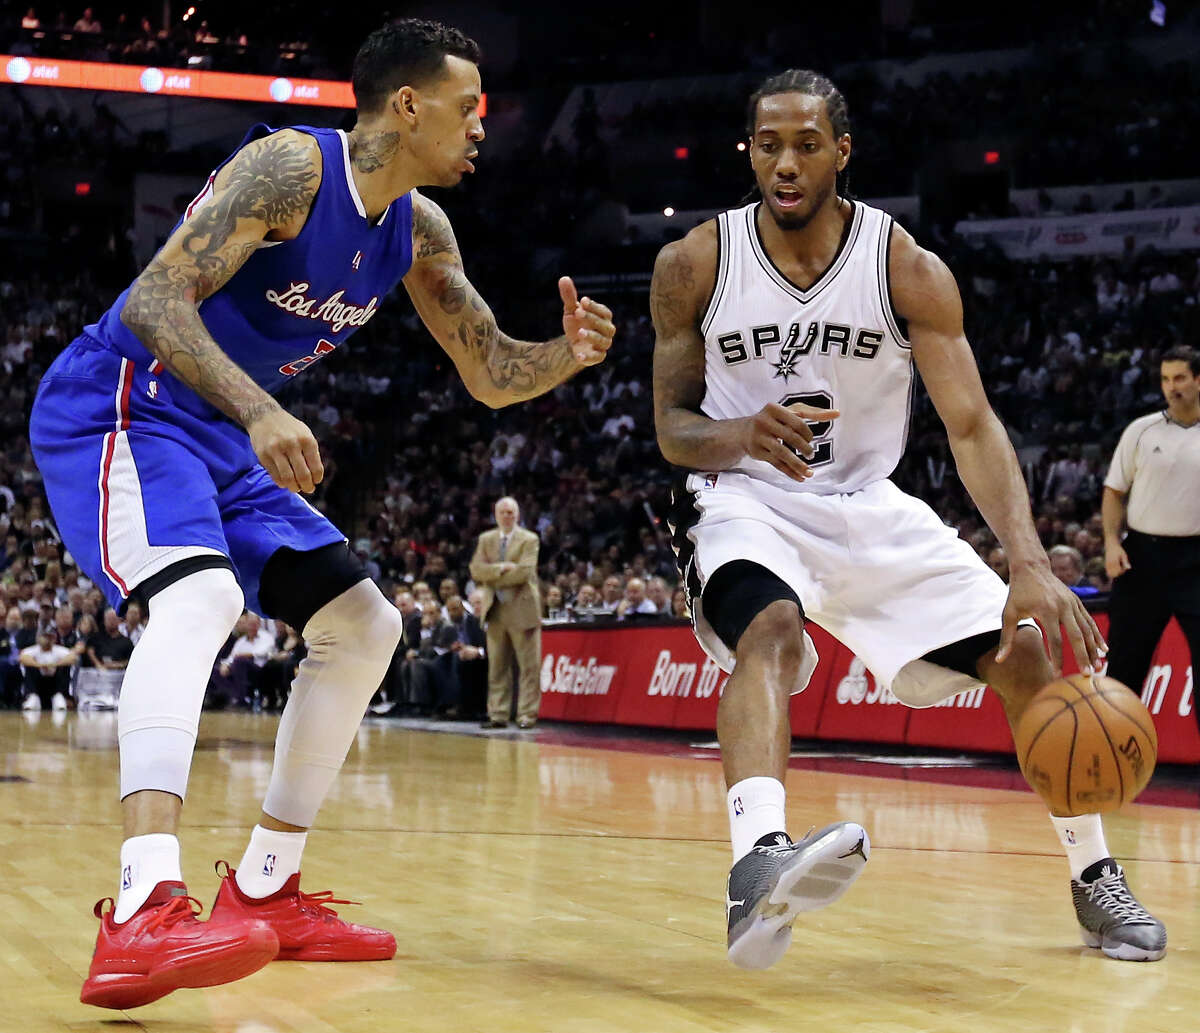 Spurs' Kawhi Leonard looks for room around Los Angeles Clippers' Matt Barnes during second half action in Game 6 of the first round of the Western Conference playoffs Thursday April 30, 2015 at the AT&T Center.